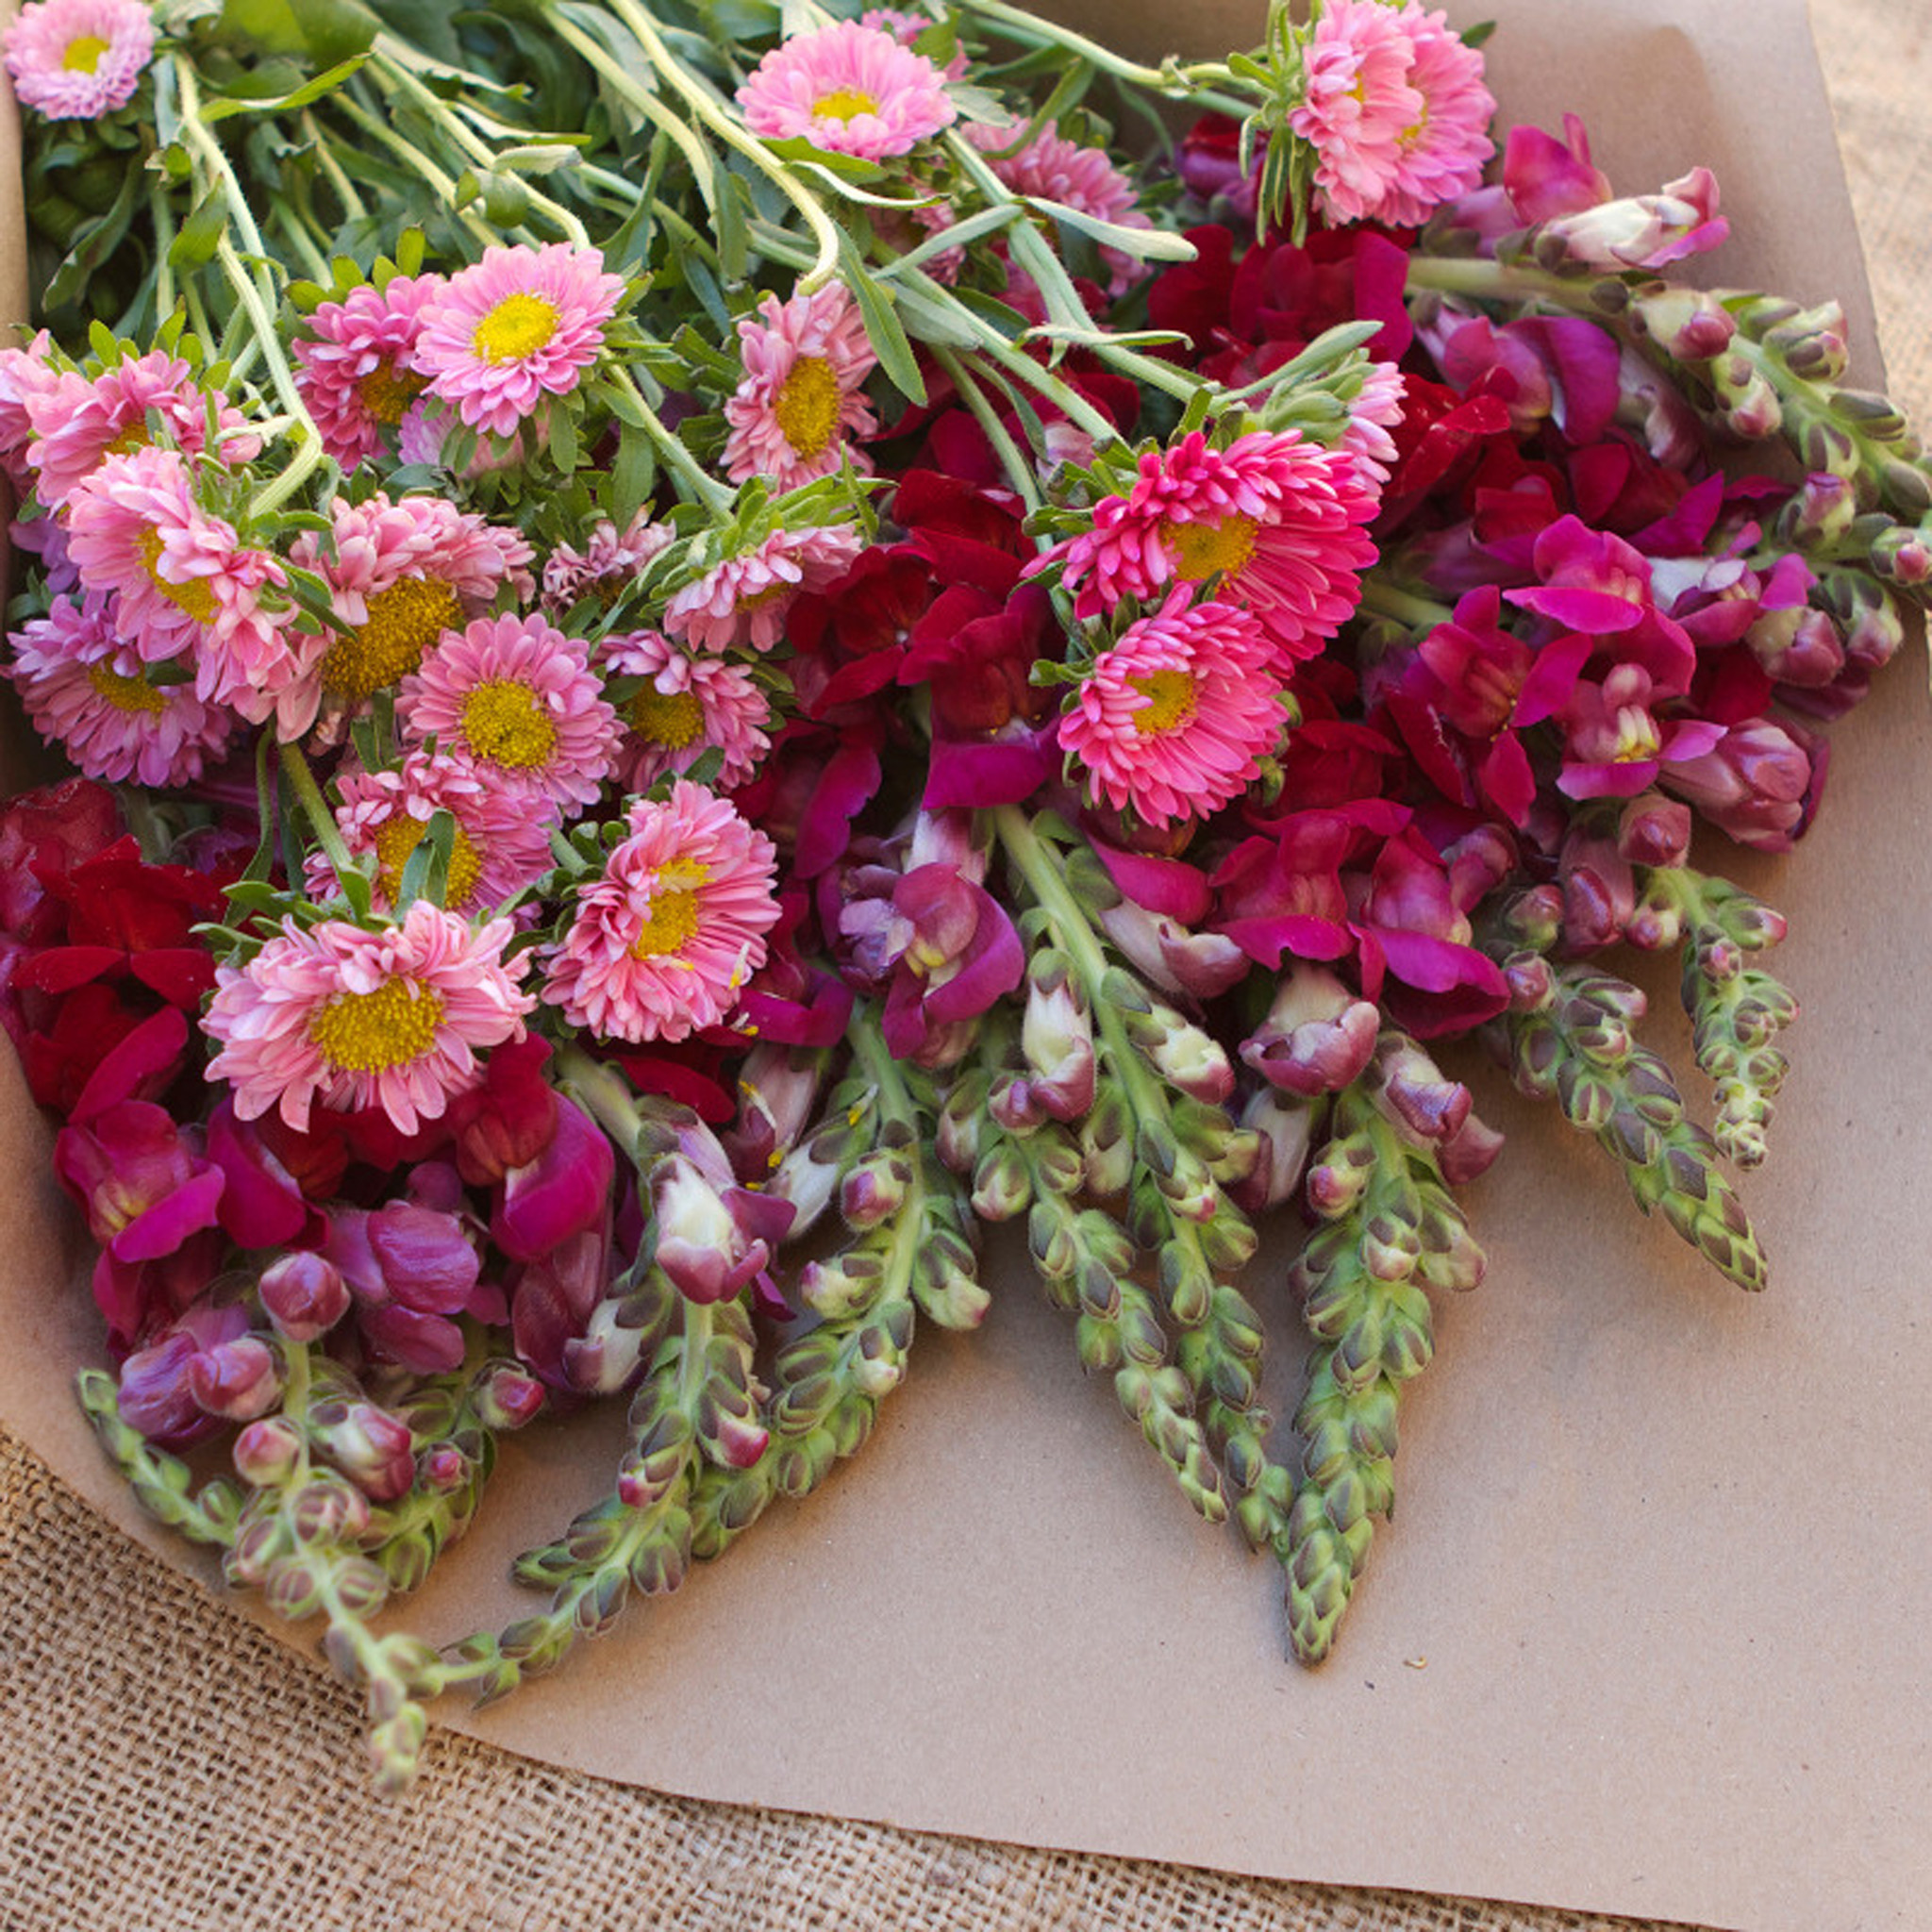 sustainable valentine's day flowers your online options are, Beautiful flower